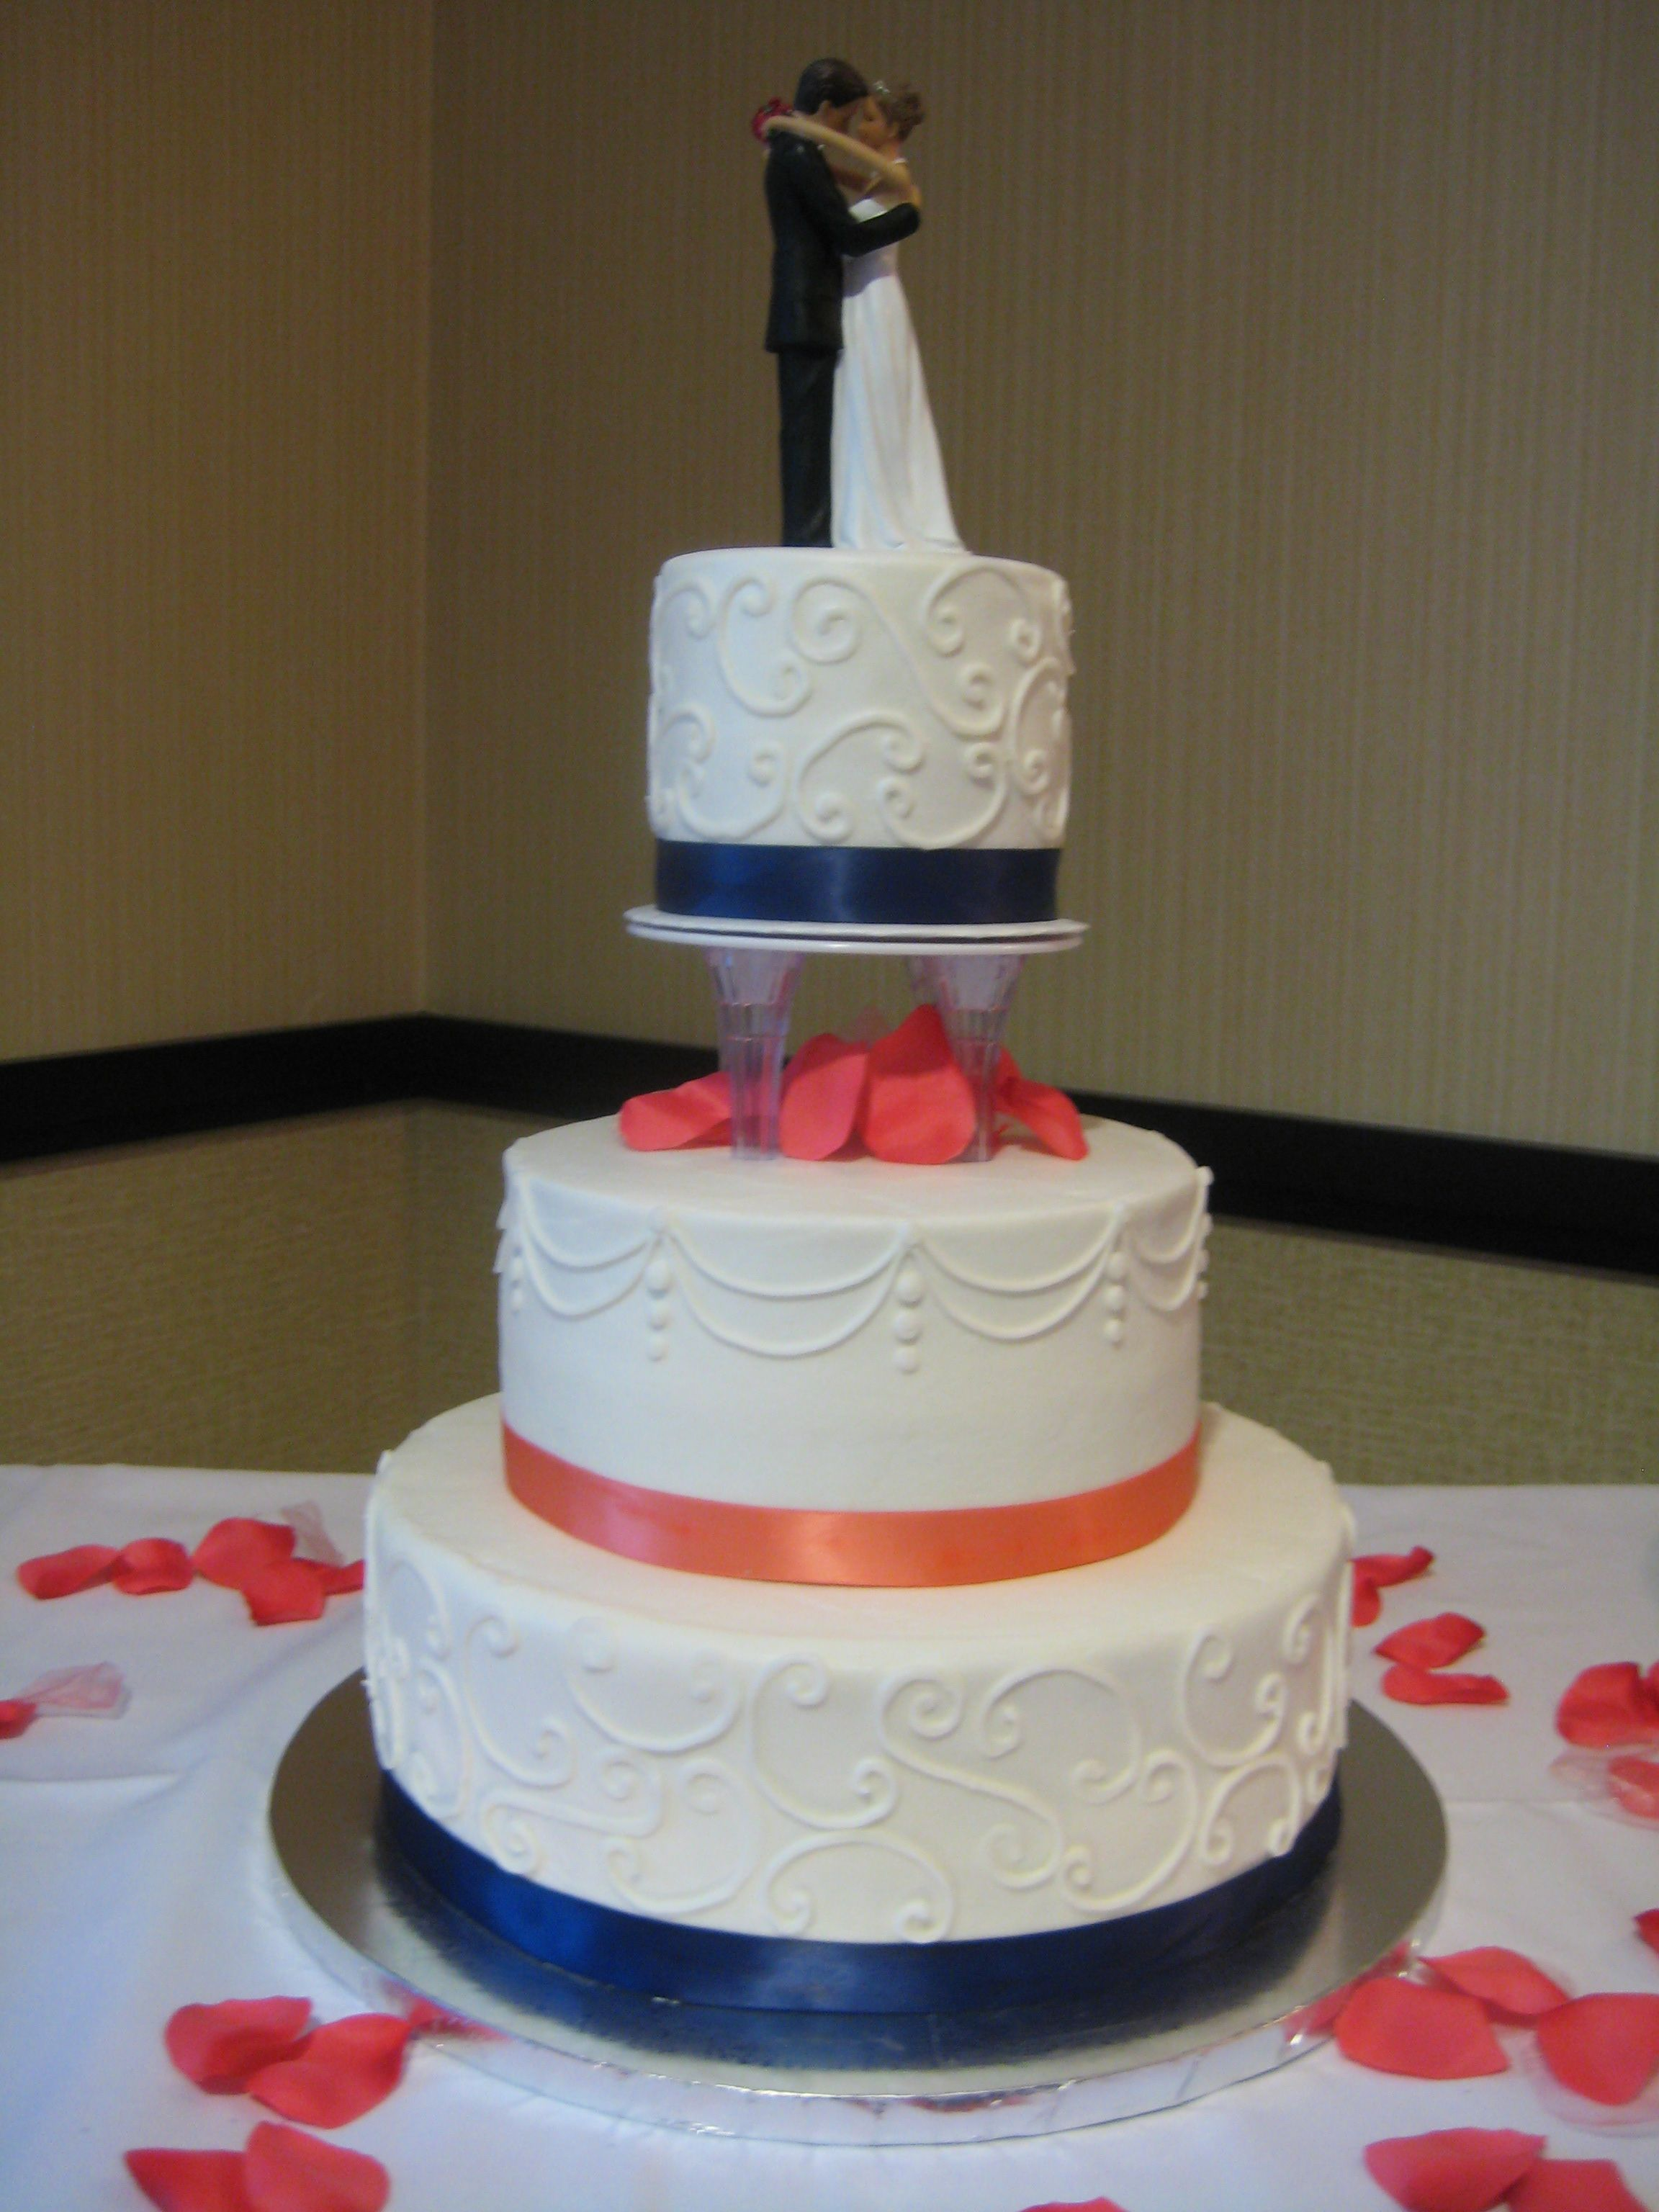 3 Tier Wedding Cake With Small Separation Scrollwork And - Small Blue Wedding Cakes